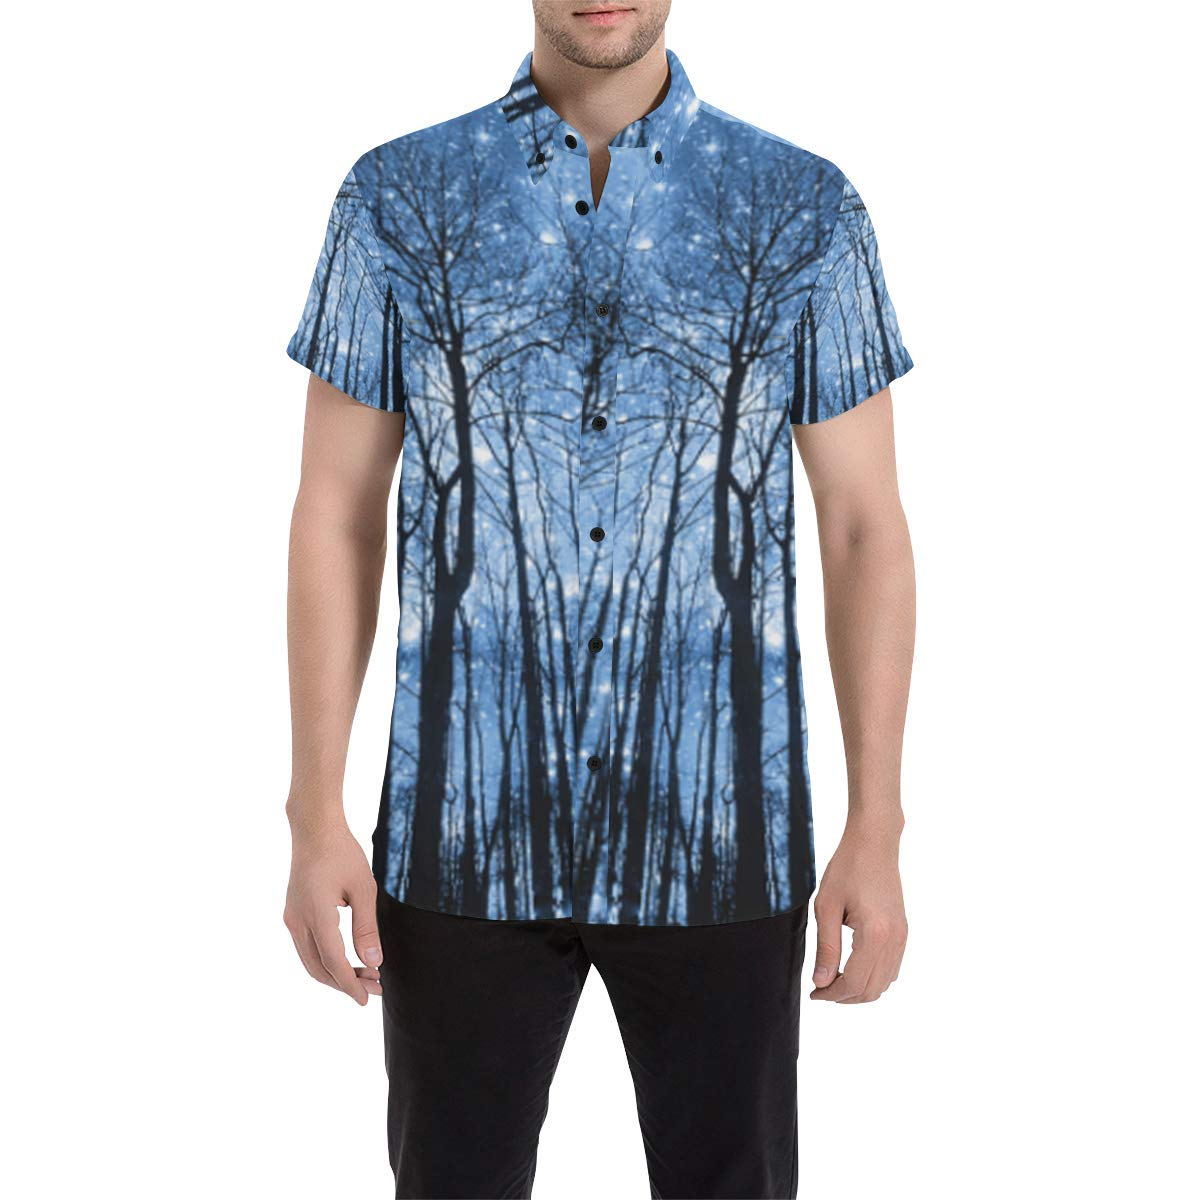 BrowneOLp Starry Forest Mens All Over Print Short Sleeve Shirt//Large Size